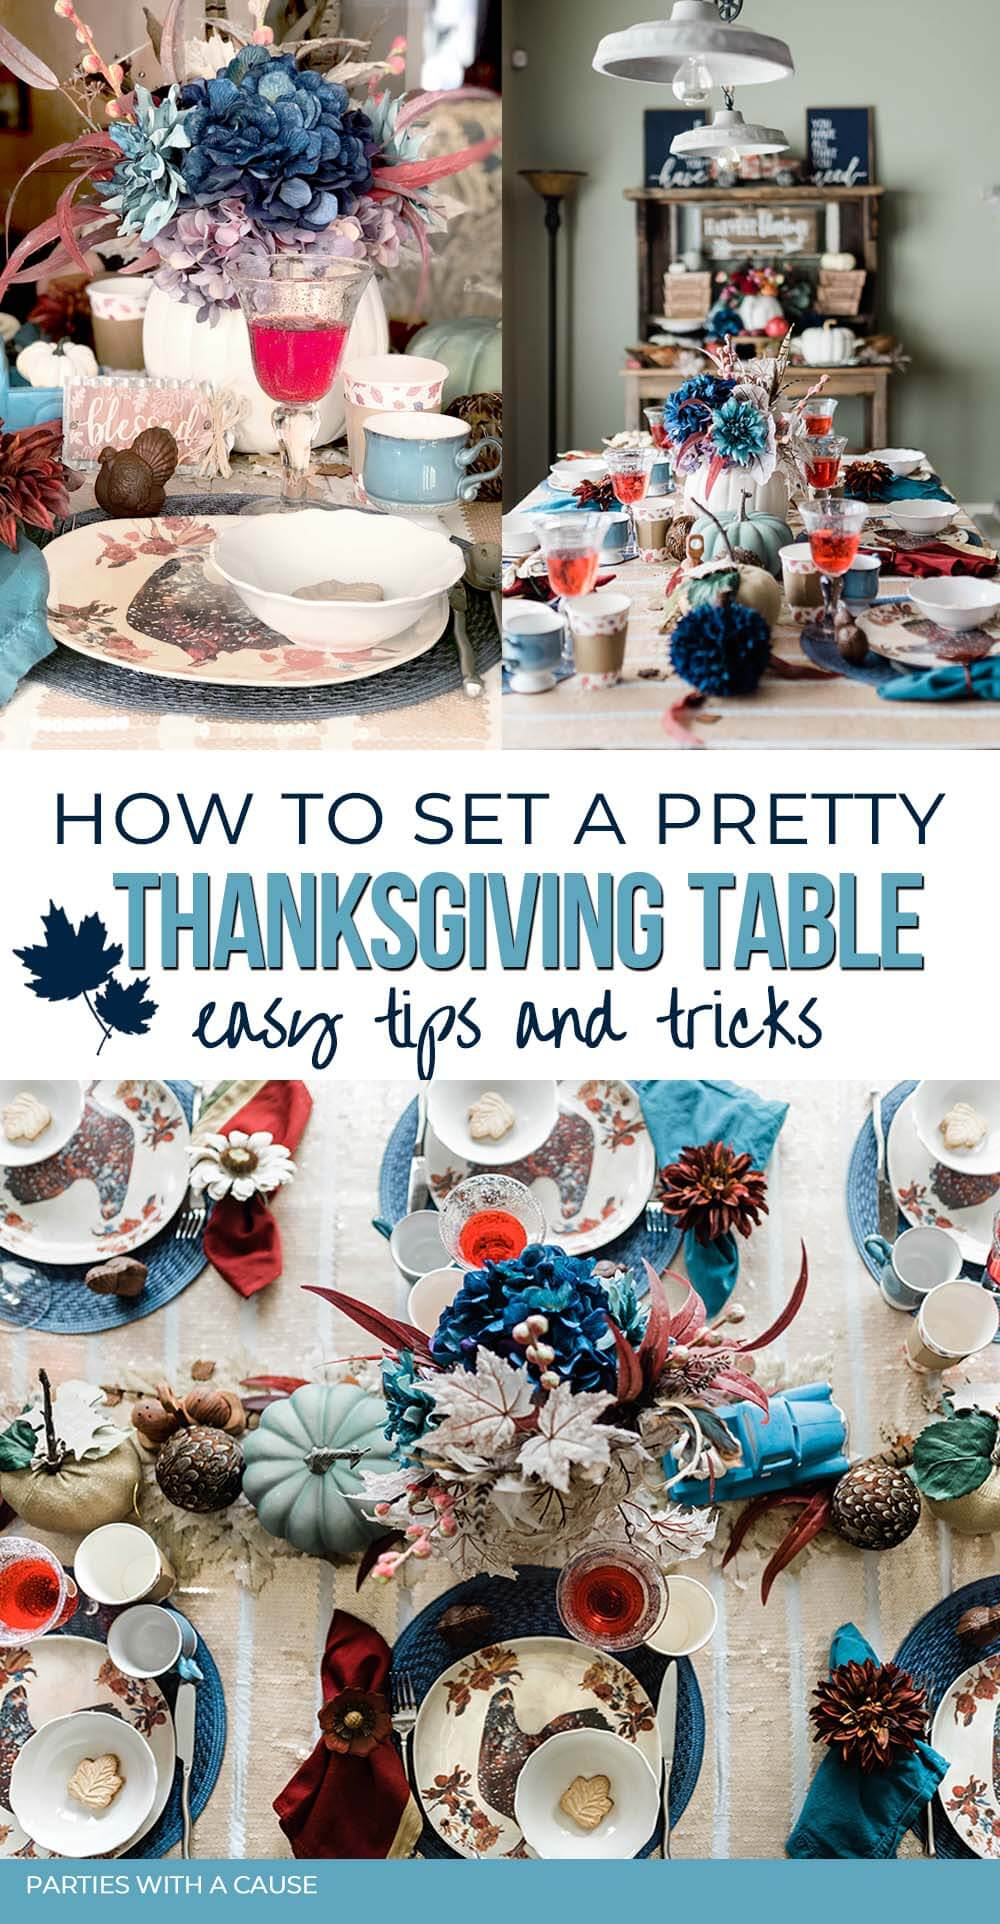 Ideas for Thanksgiving table by Salt Lake Party Stylist